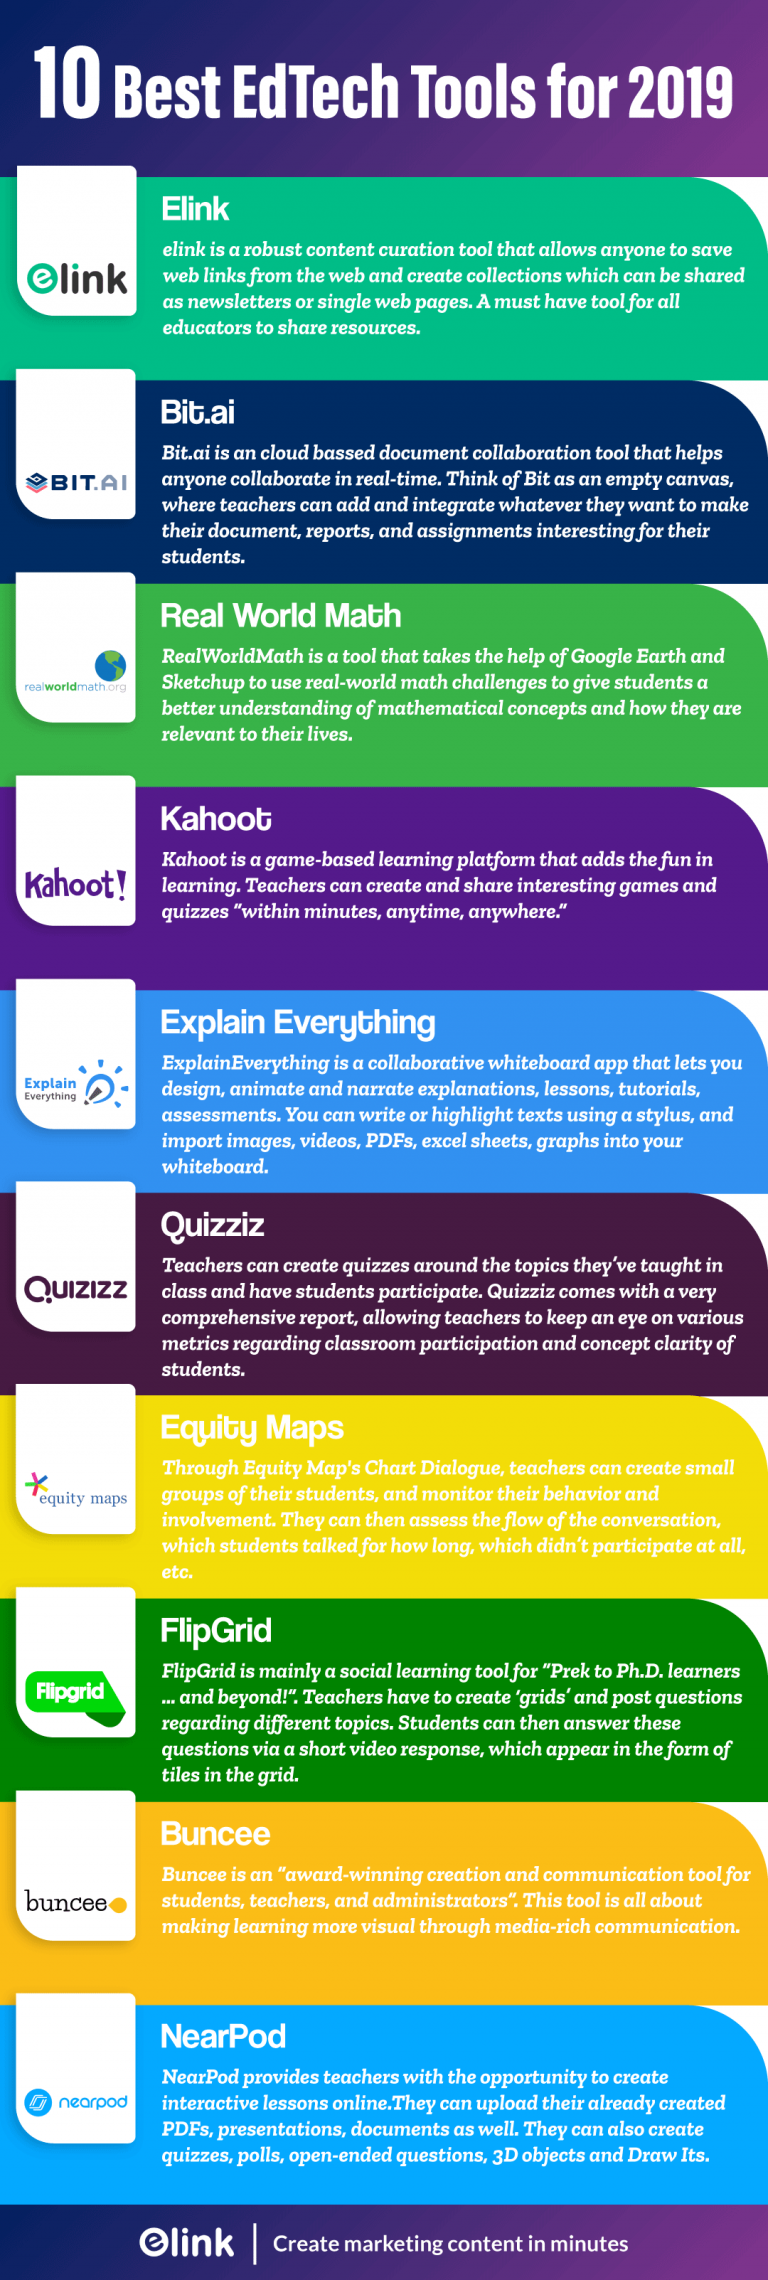 10-Best-EdTech-Tools-for-2019